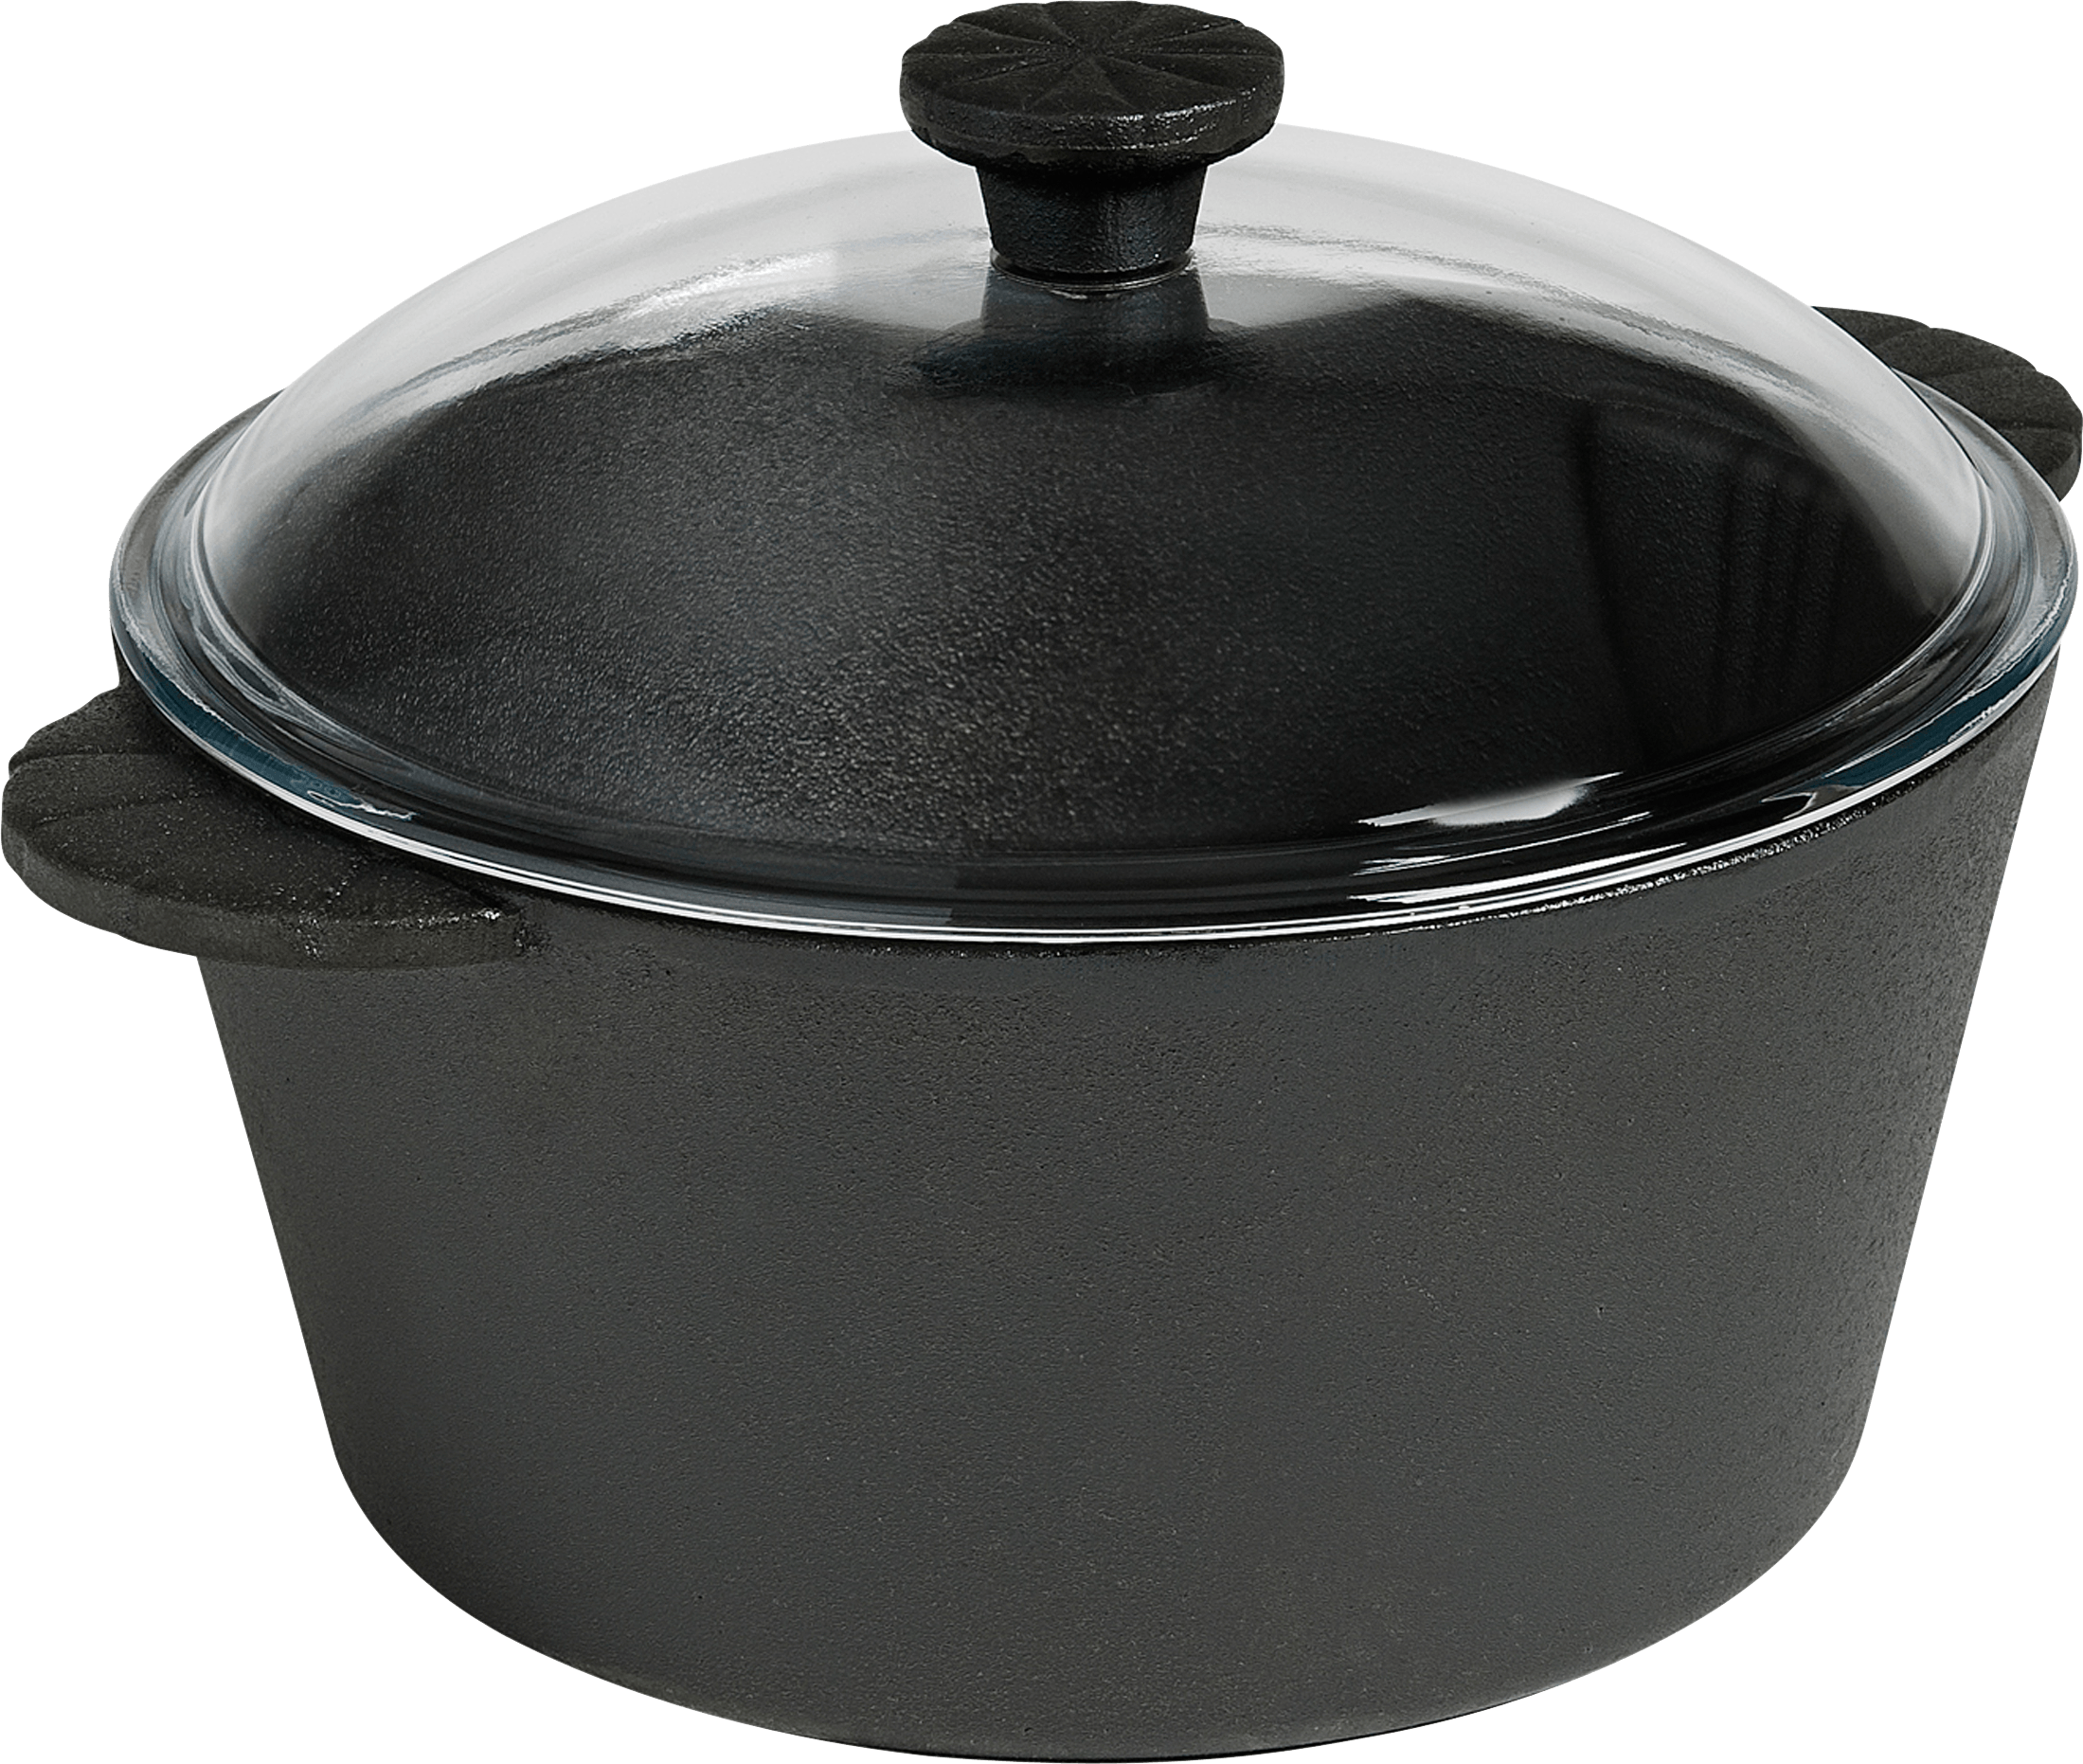 Cooking Pan Png Image PNG Image